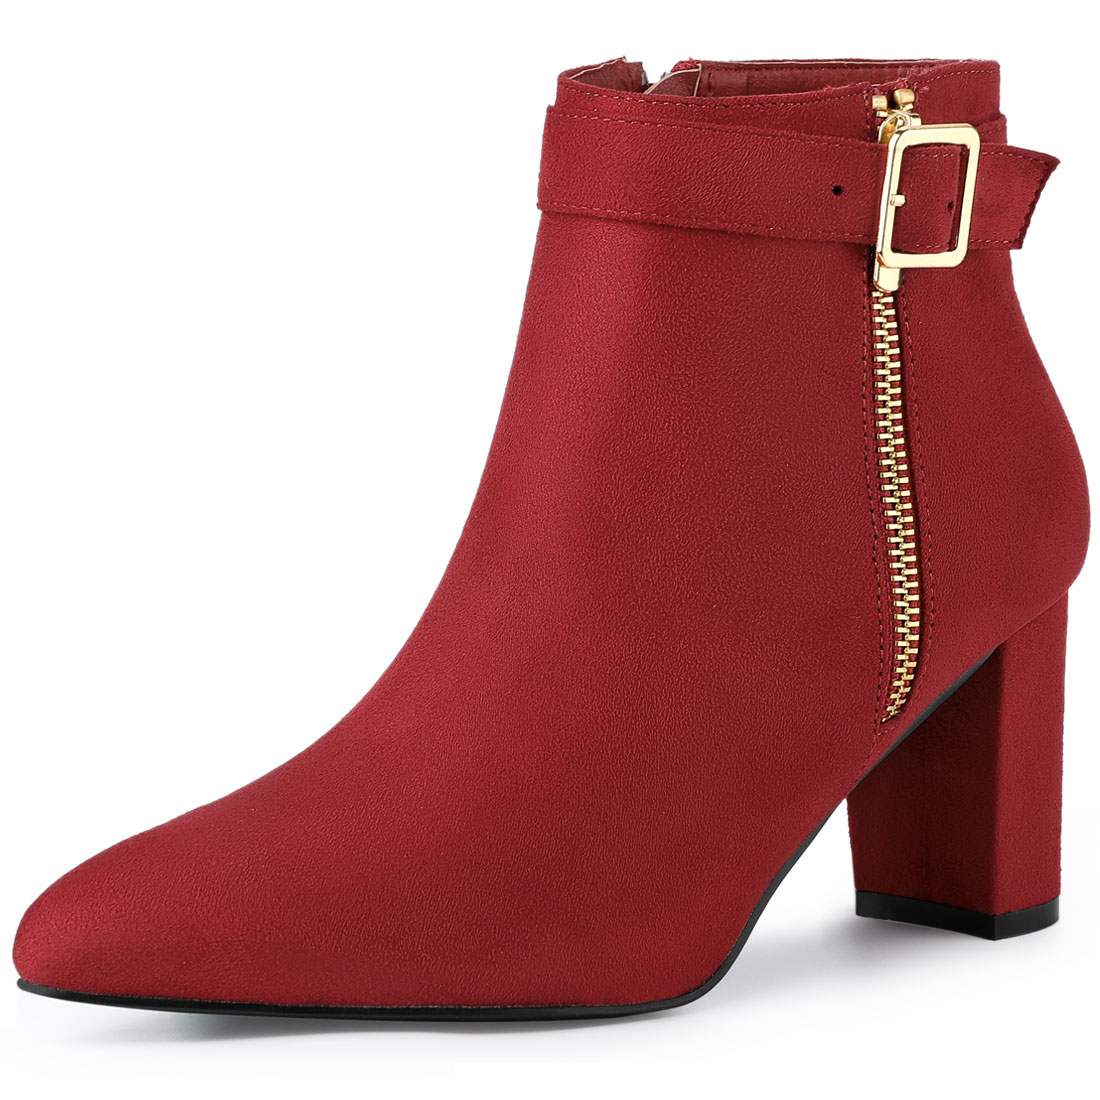 Allegra K Women's Pointed Toe Buckle Chunky Heel Ankle Booties Red US 5.5